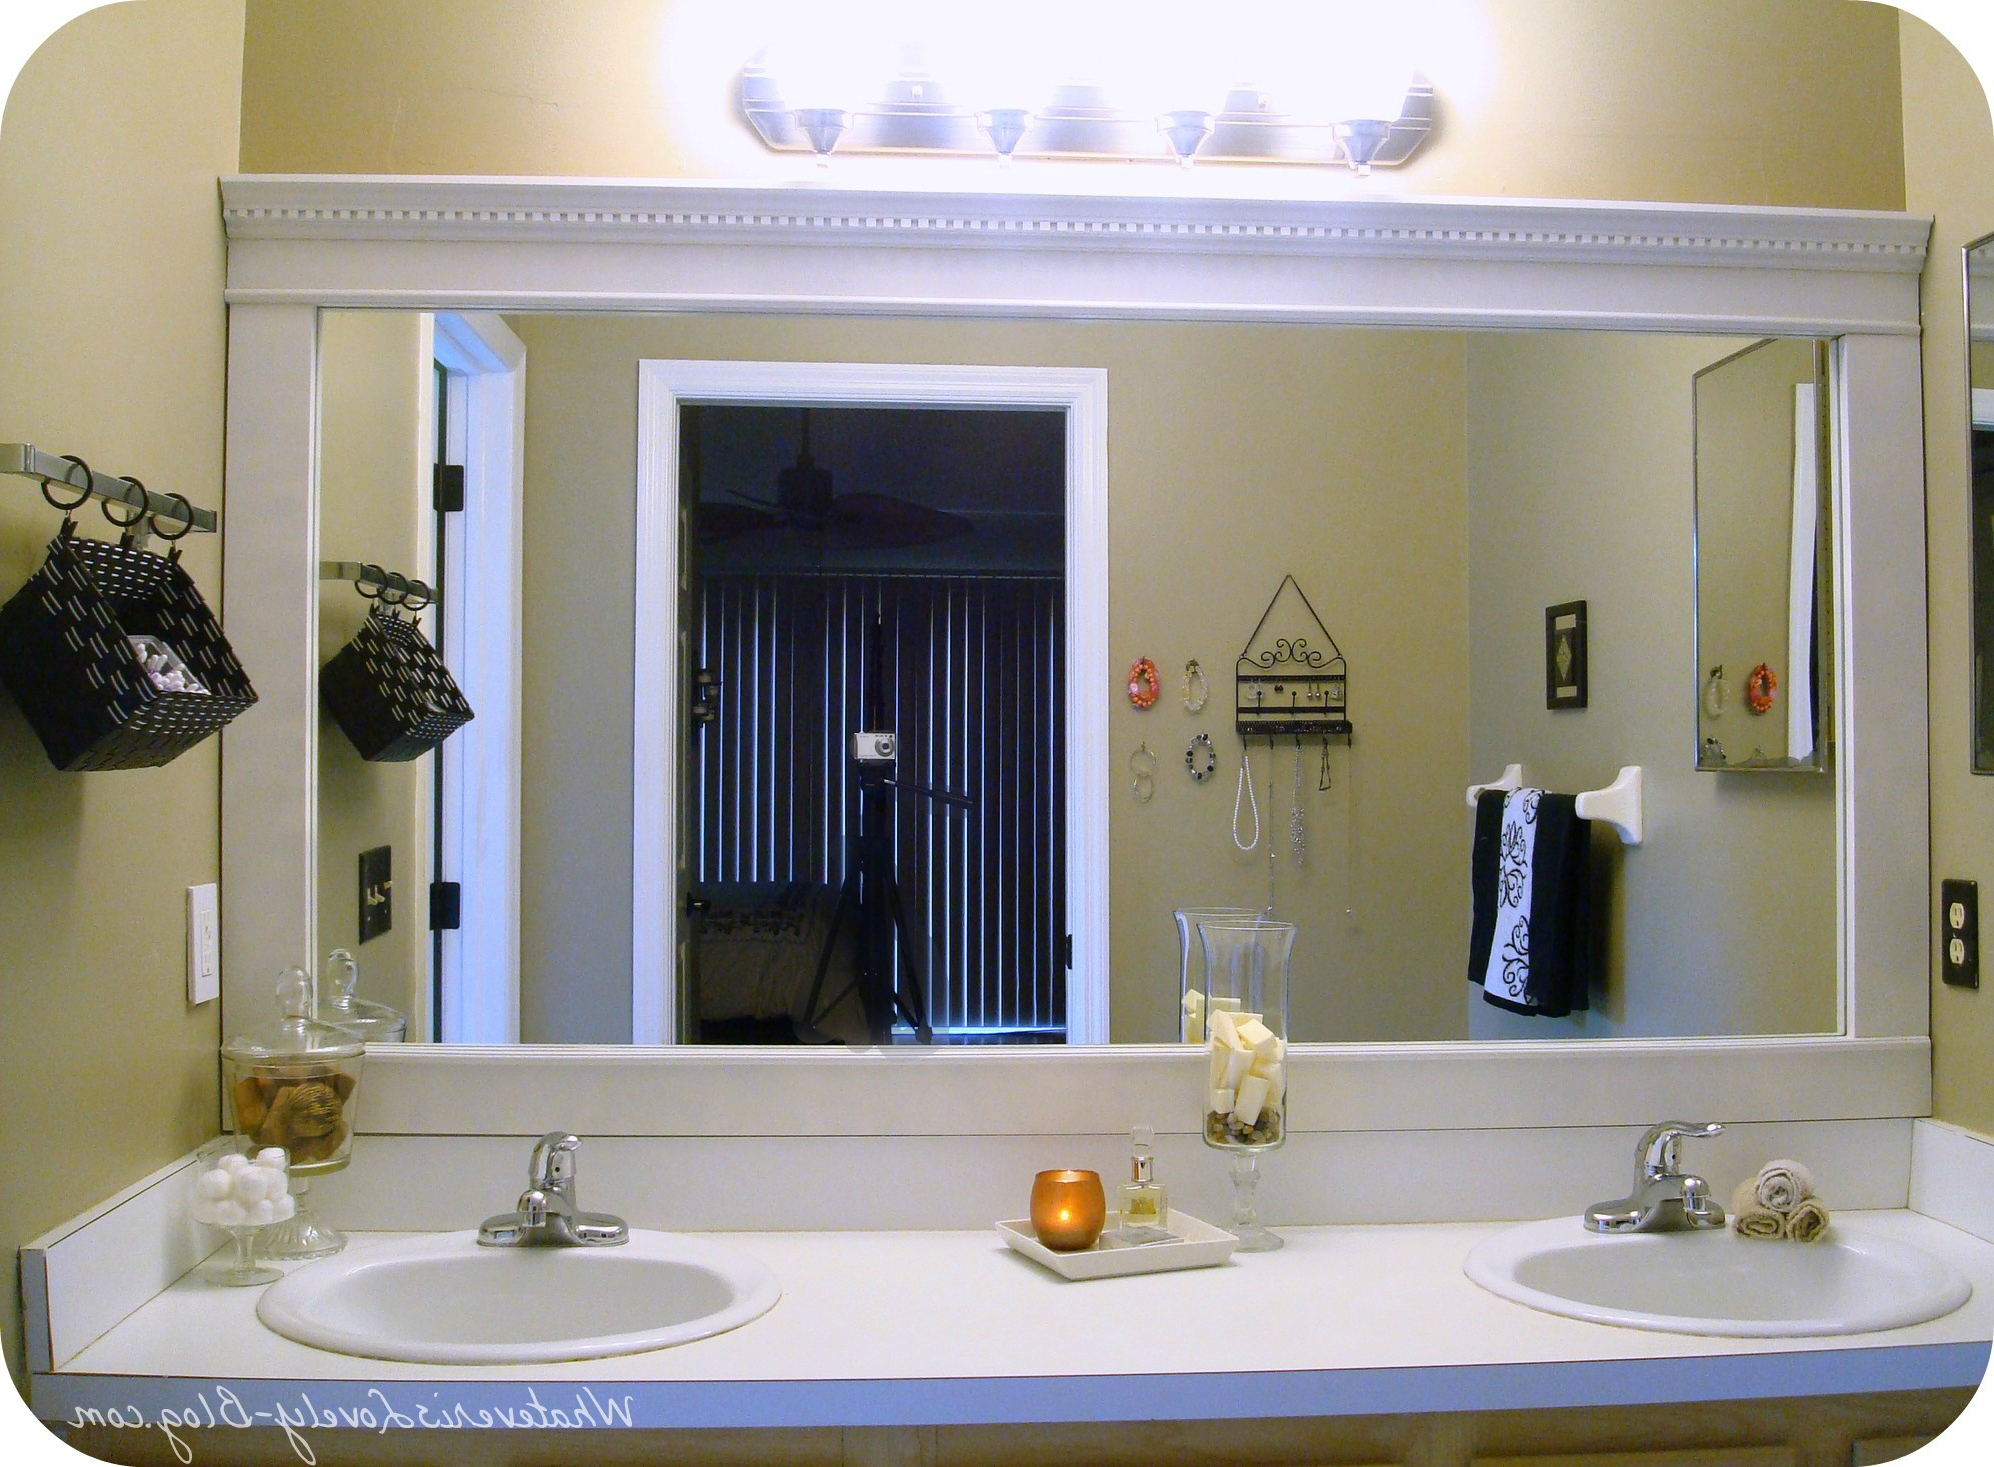 Trendy Framed Bathroom Mirrors Also Small Decorative Mirrors Also In Large White Framed Wall Mirrors (View 13 of 20)